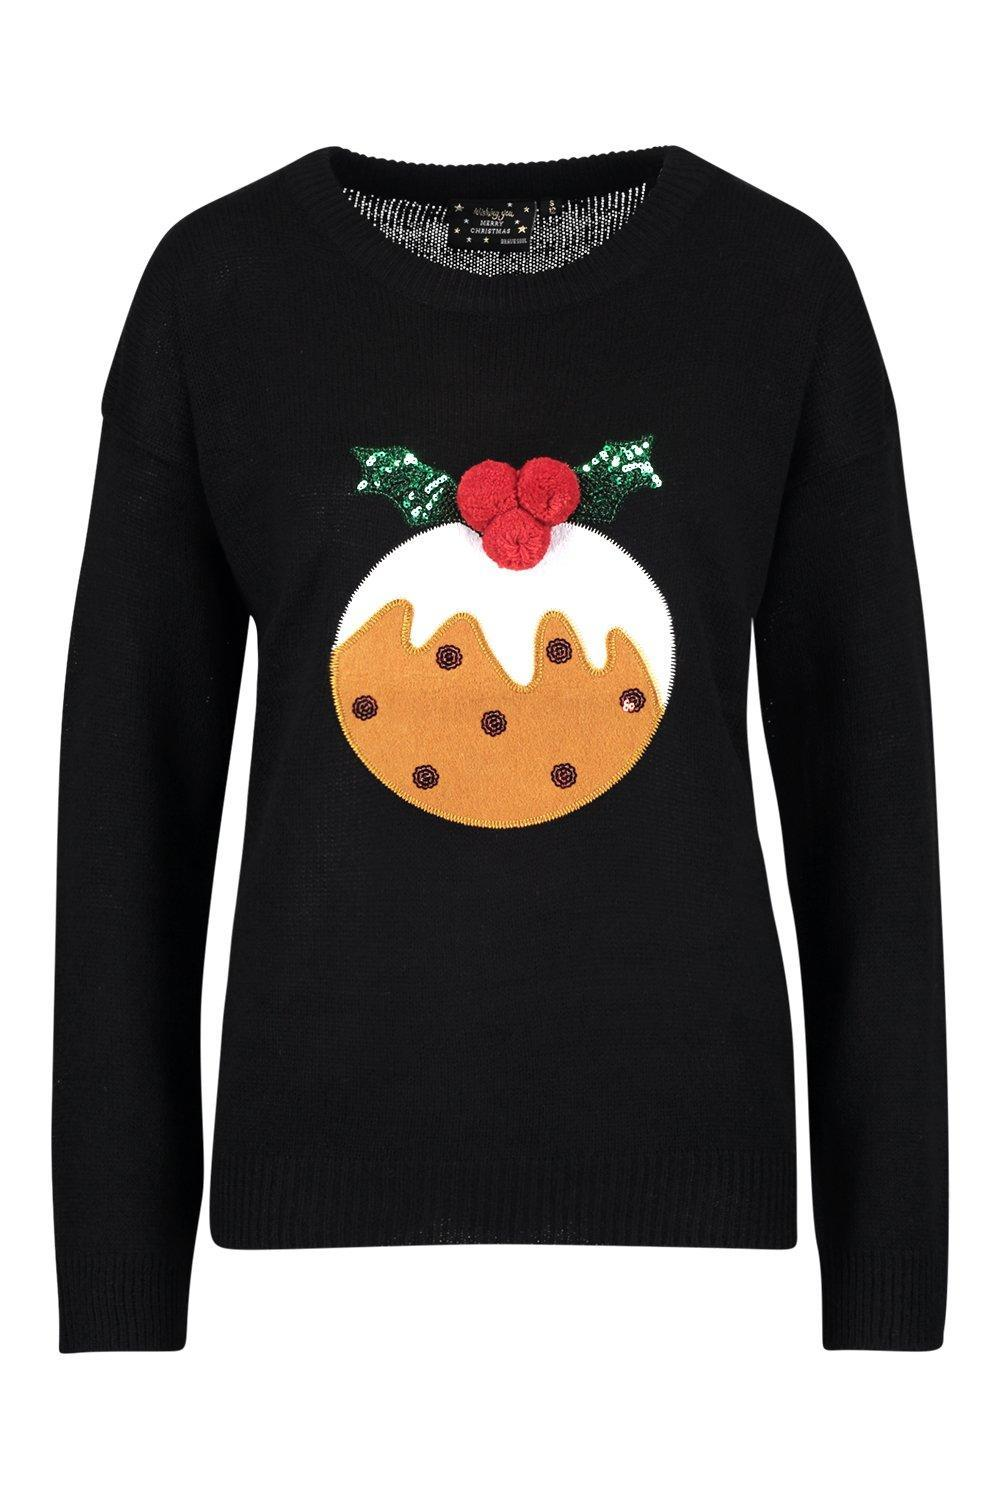 e5d68be623525 Boohoo Christmas Pudding Applique Sweater With Pom Pom in Black - Lyst